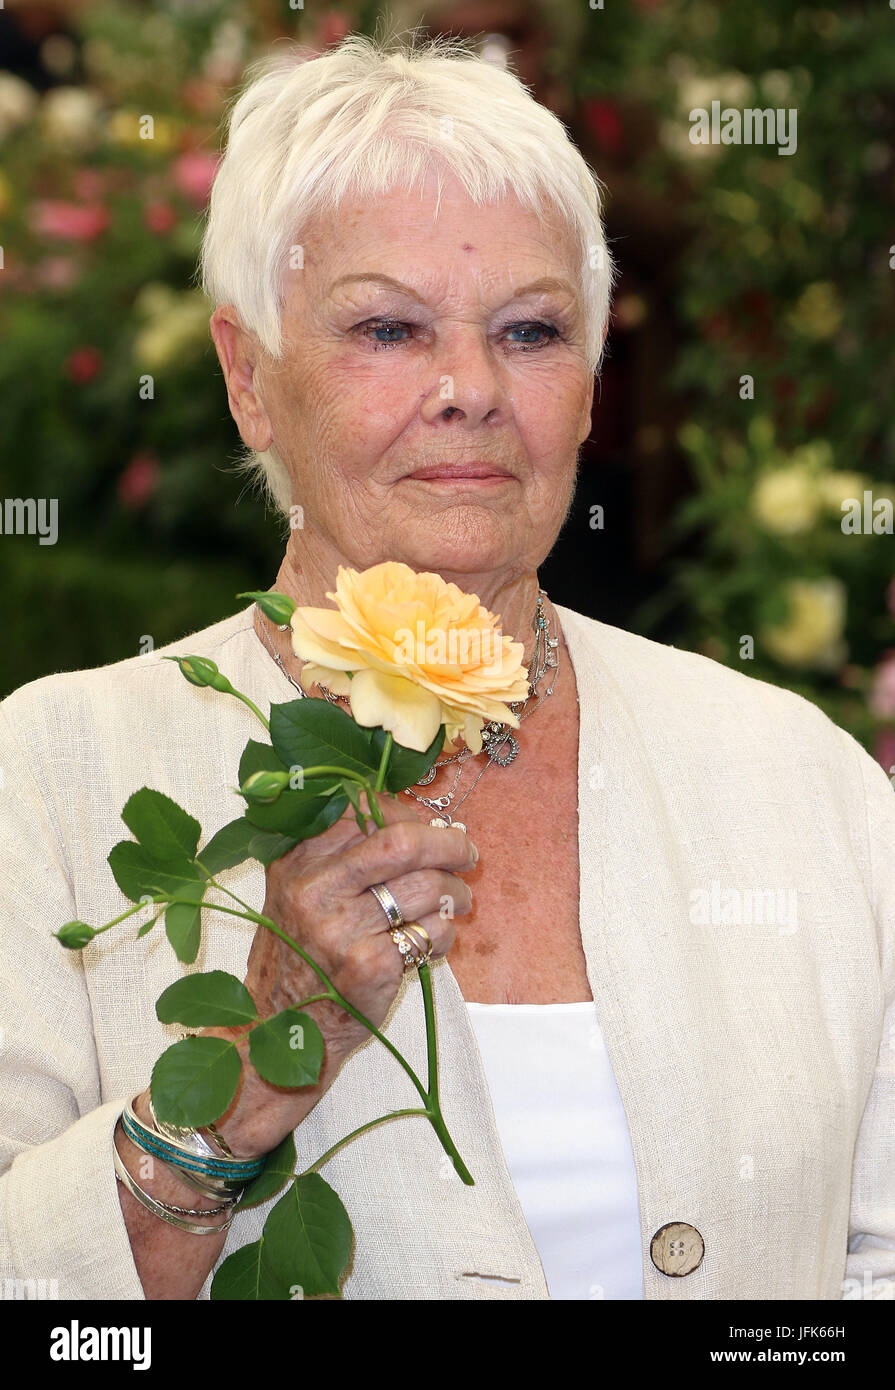 May 22, 2017 - Judi Dench attending Chelsea Flower Show 2017 Press Day, Royal Hospital Chelsea  in London, England, - Stock Image